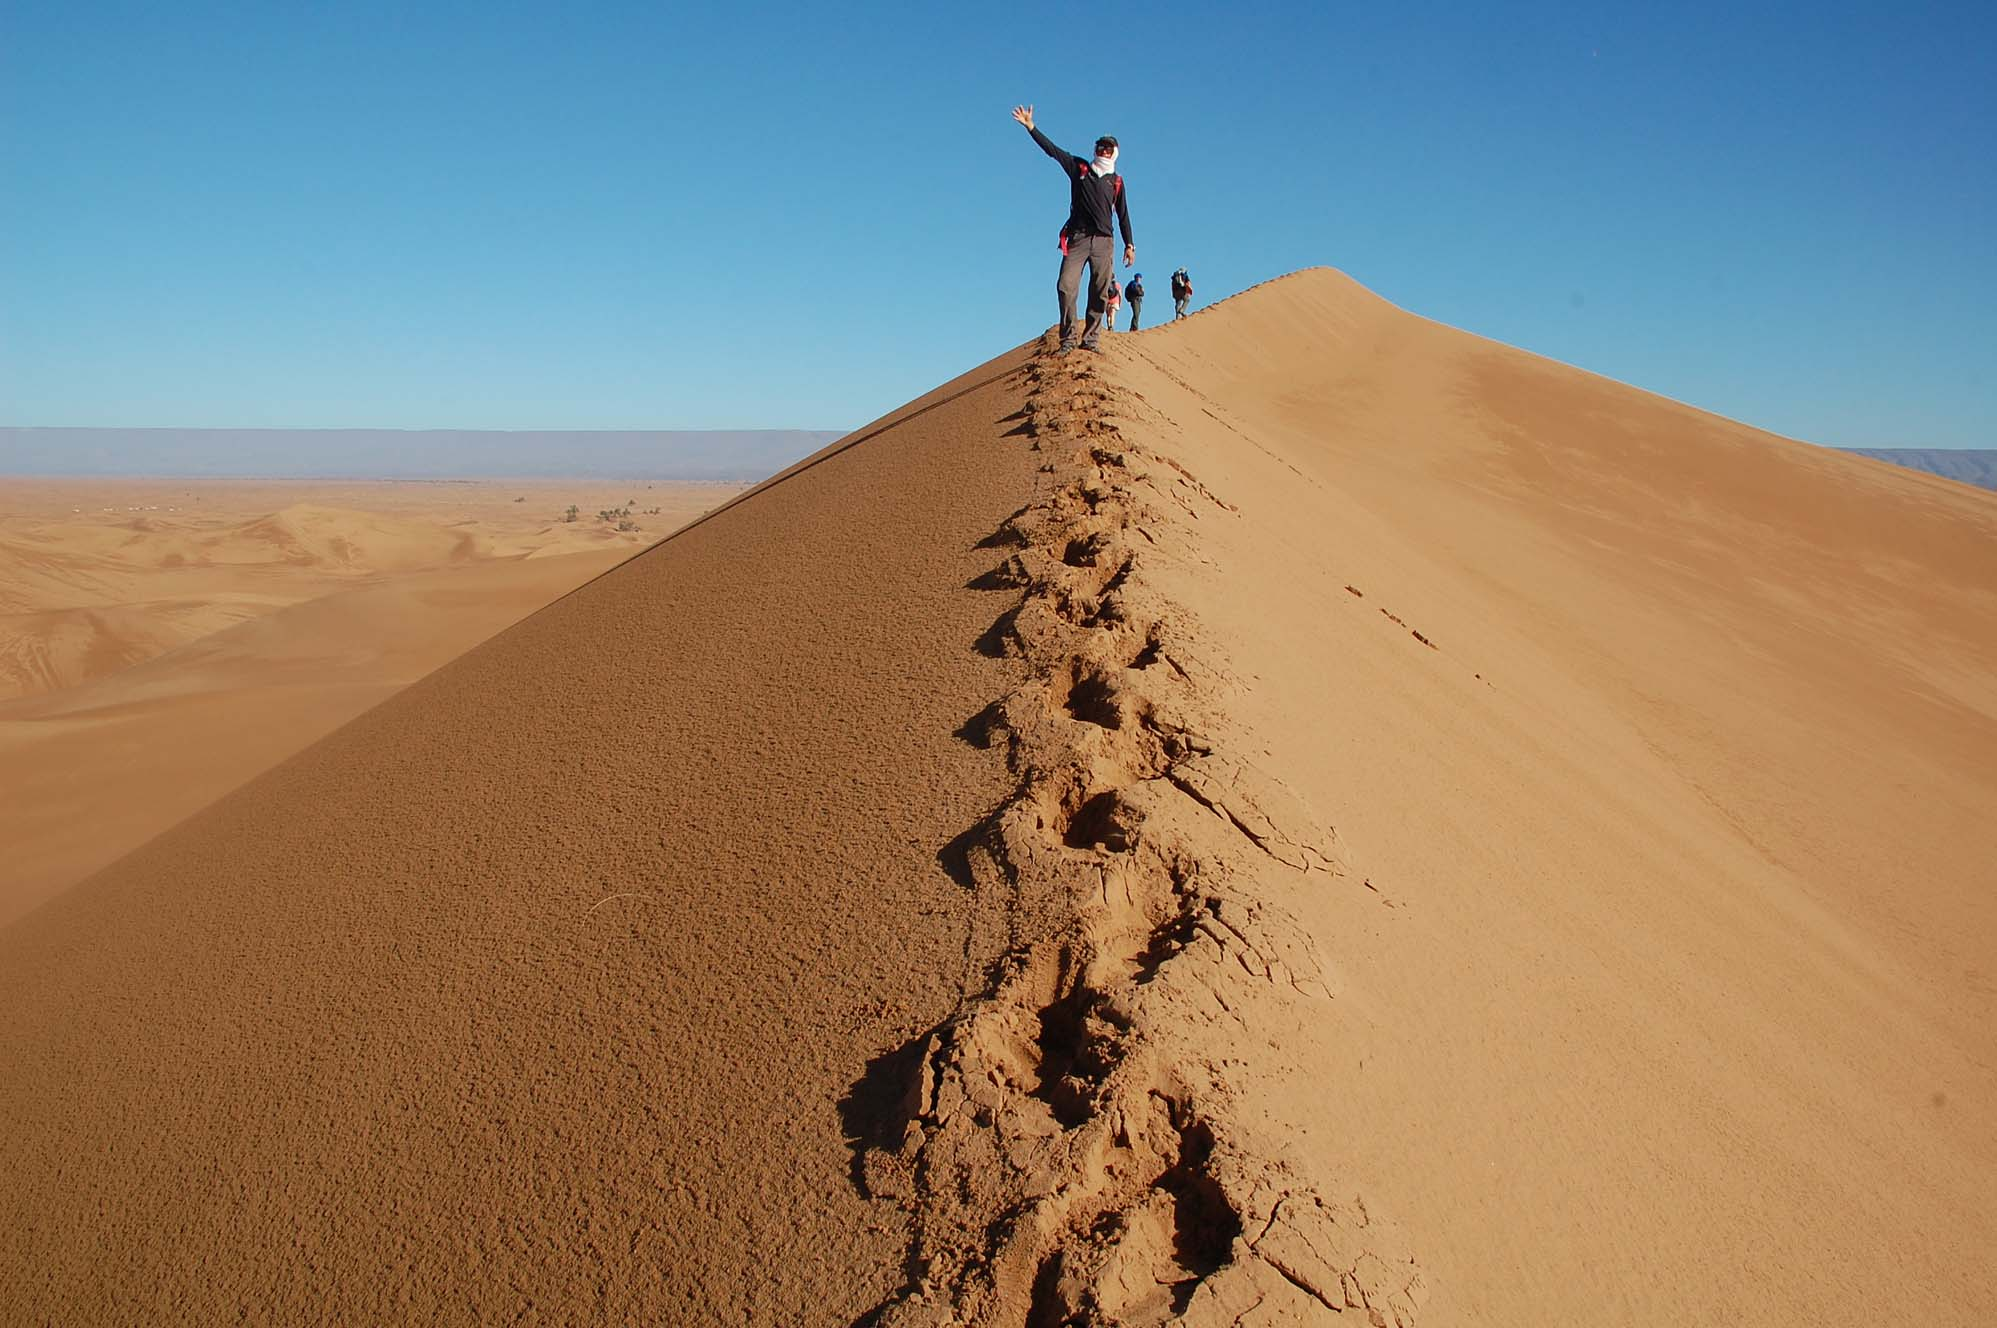 Trek The Sahara Desert With 360 Expeditions